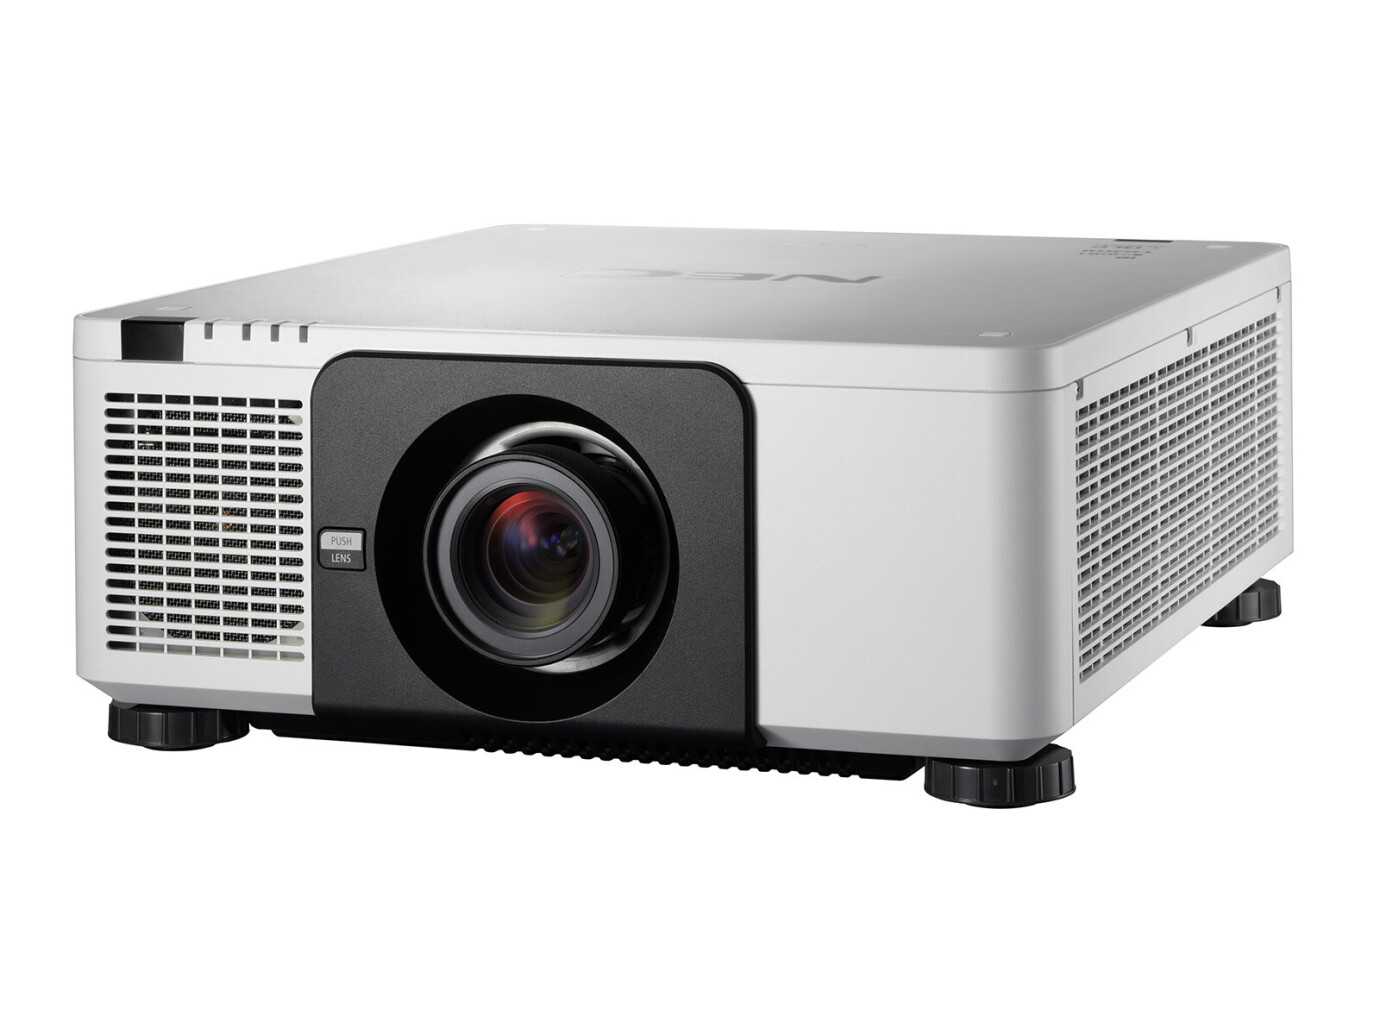 NEC PX1004UL-WH (without lens)